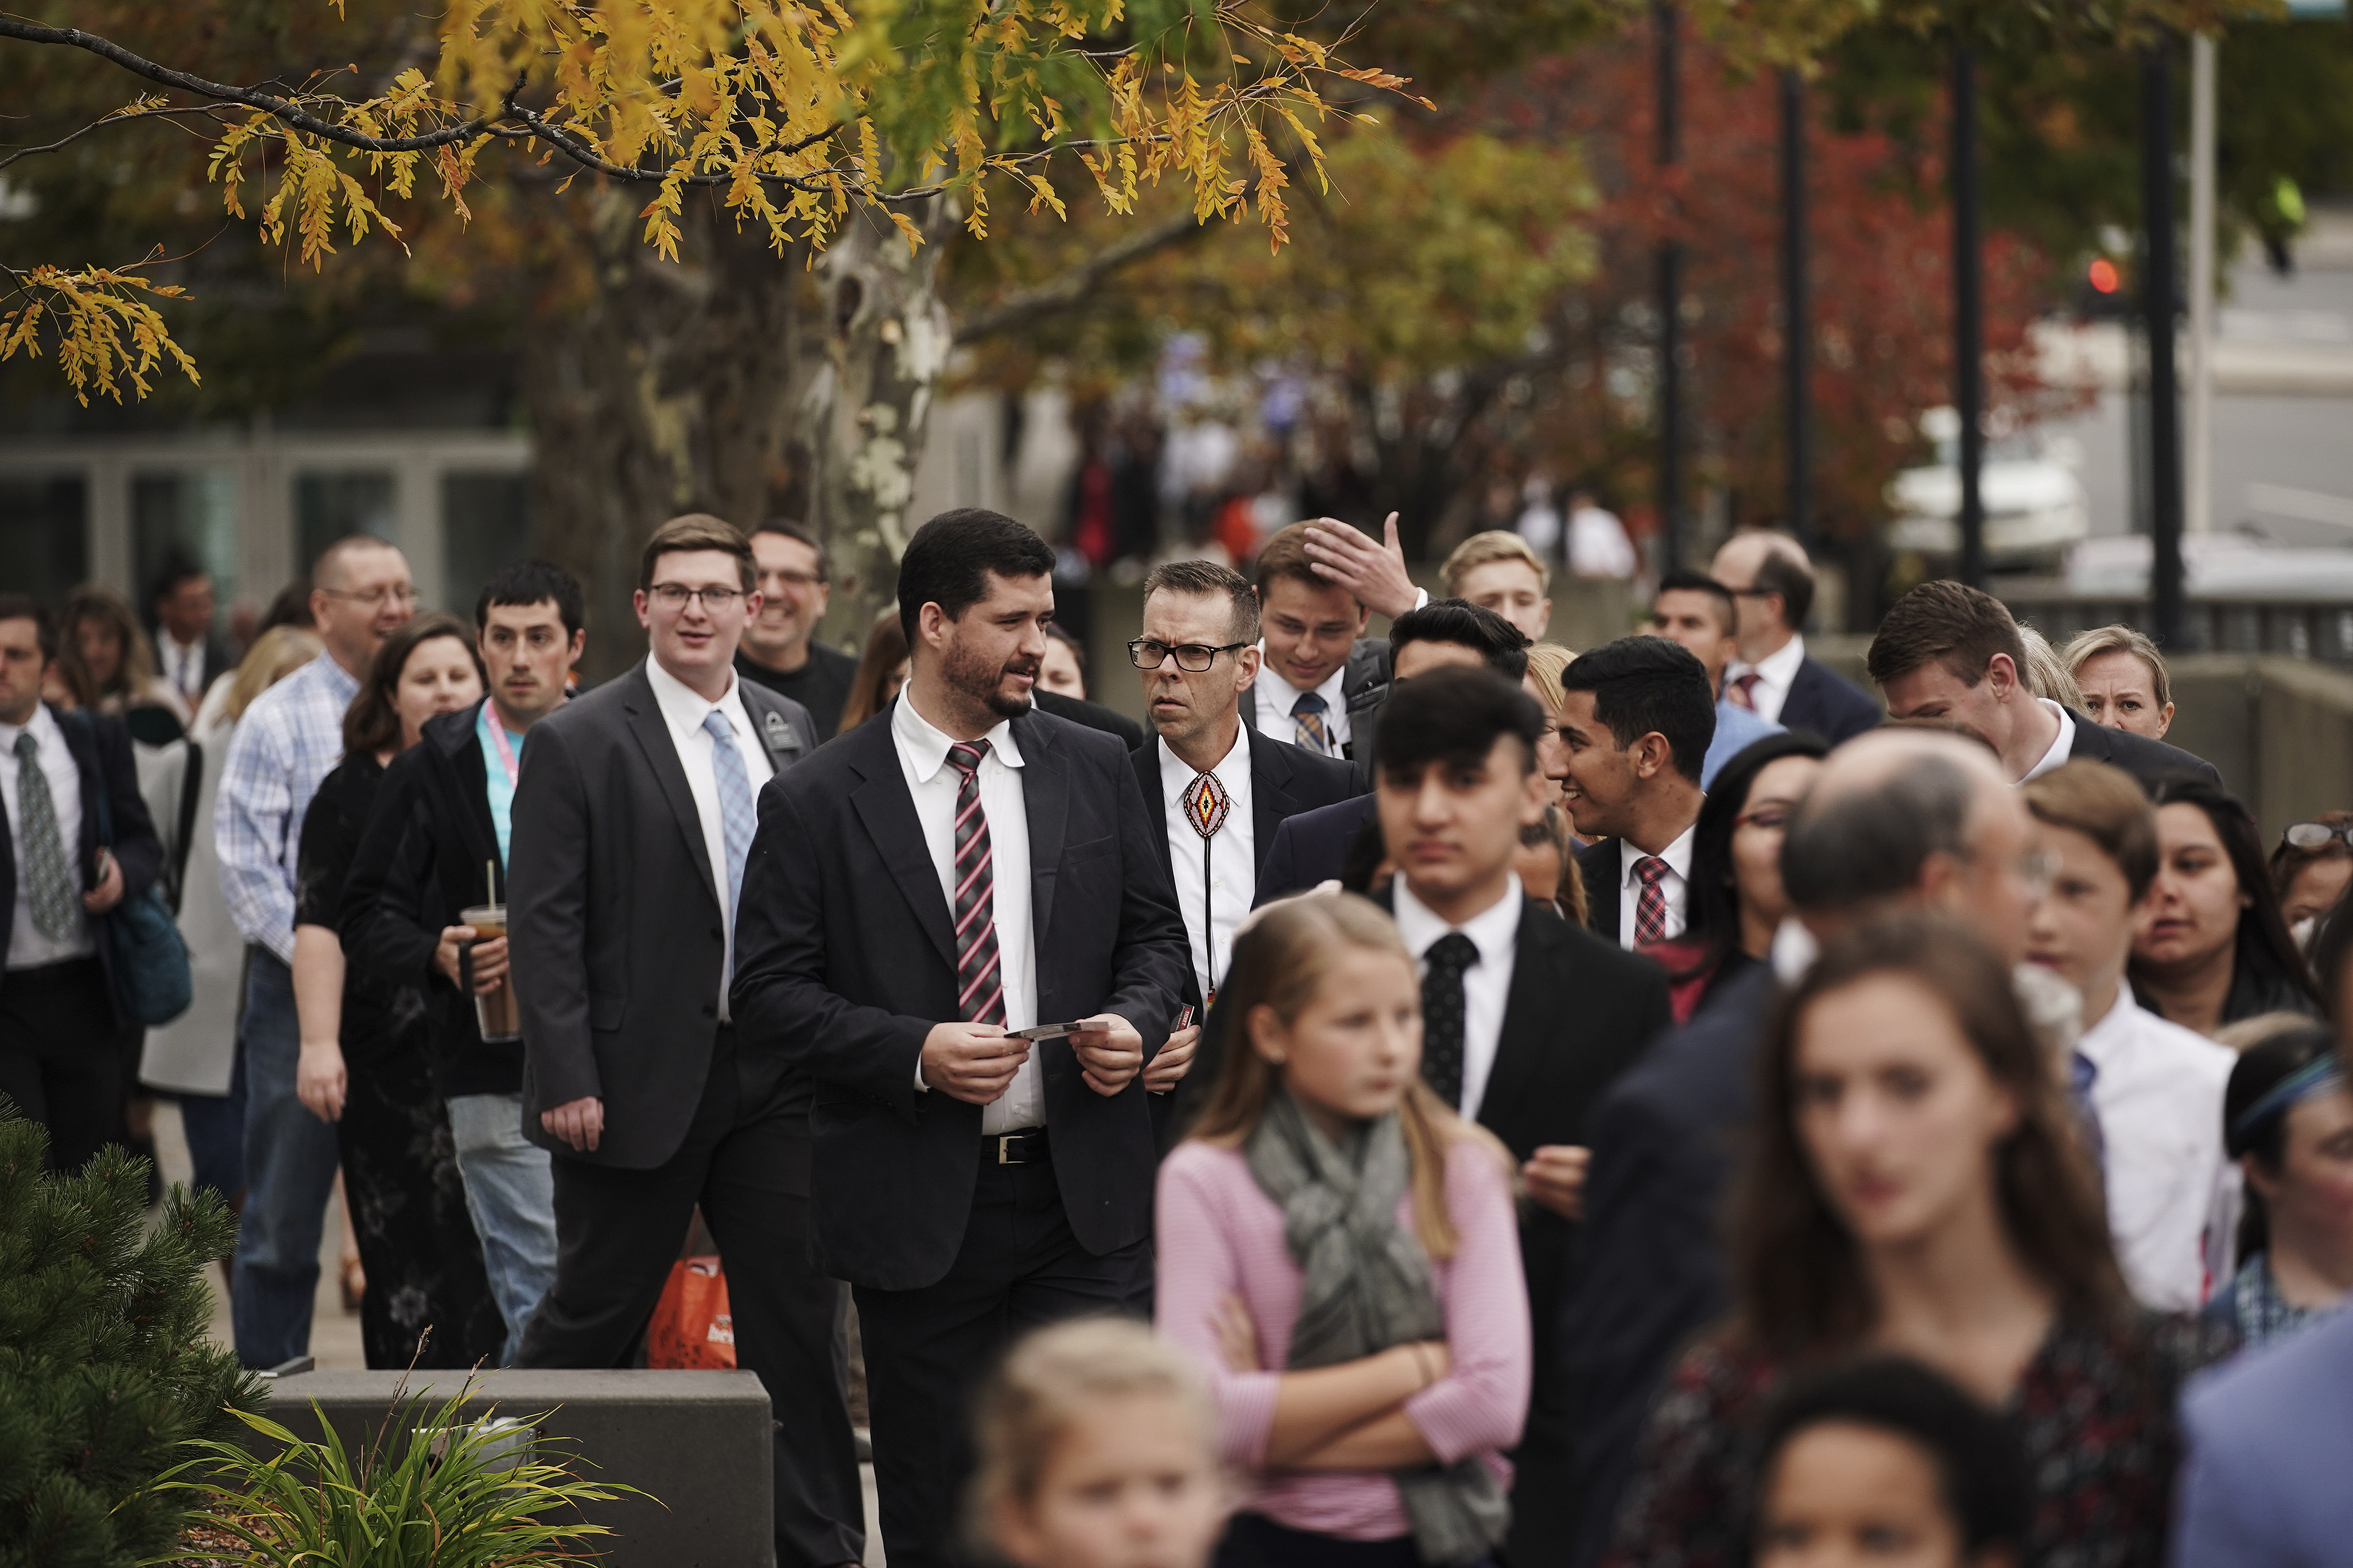 Attendees arrive to hear President M. Russell Ballard, acting president of the Quorum of the Twelve Apostles of The Church of Jesus Christ of Latter-day Saints, during a devotional in Worcester, Massachusetts, on Sunday, Oct. 20, 2019.